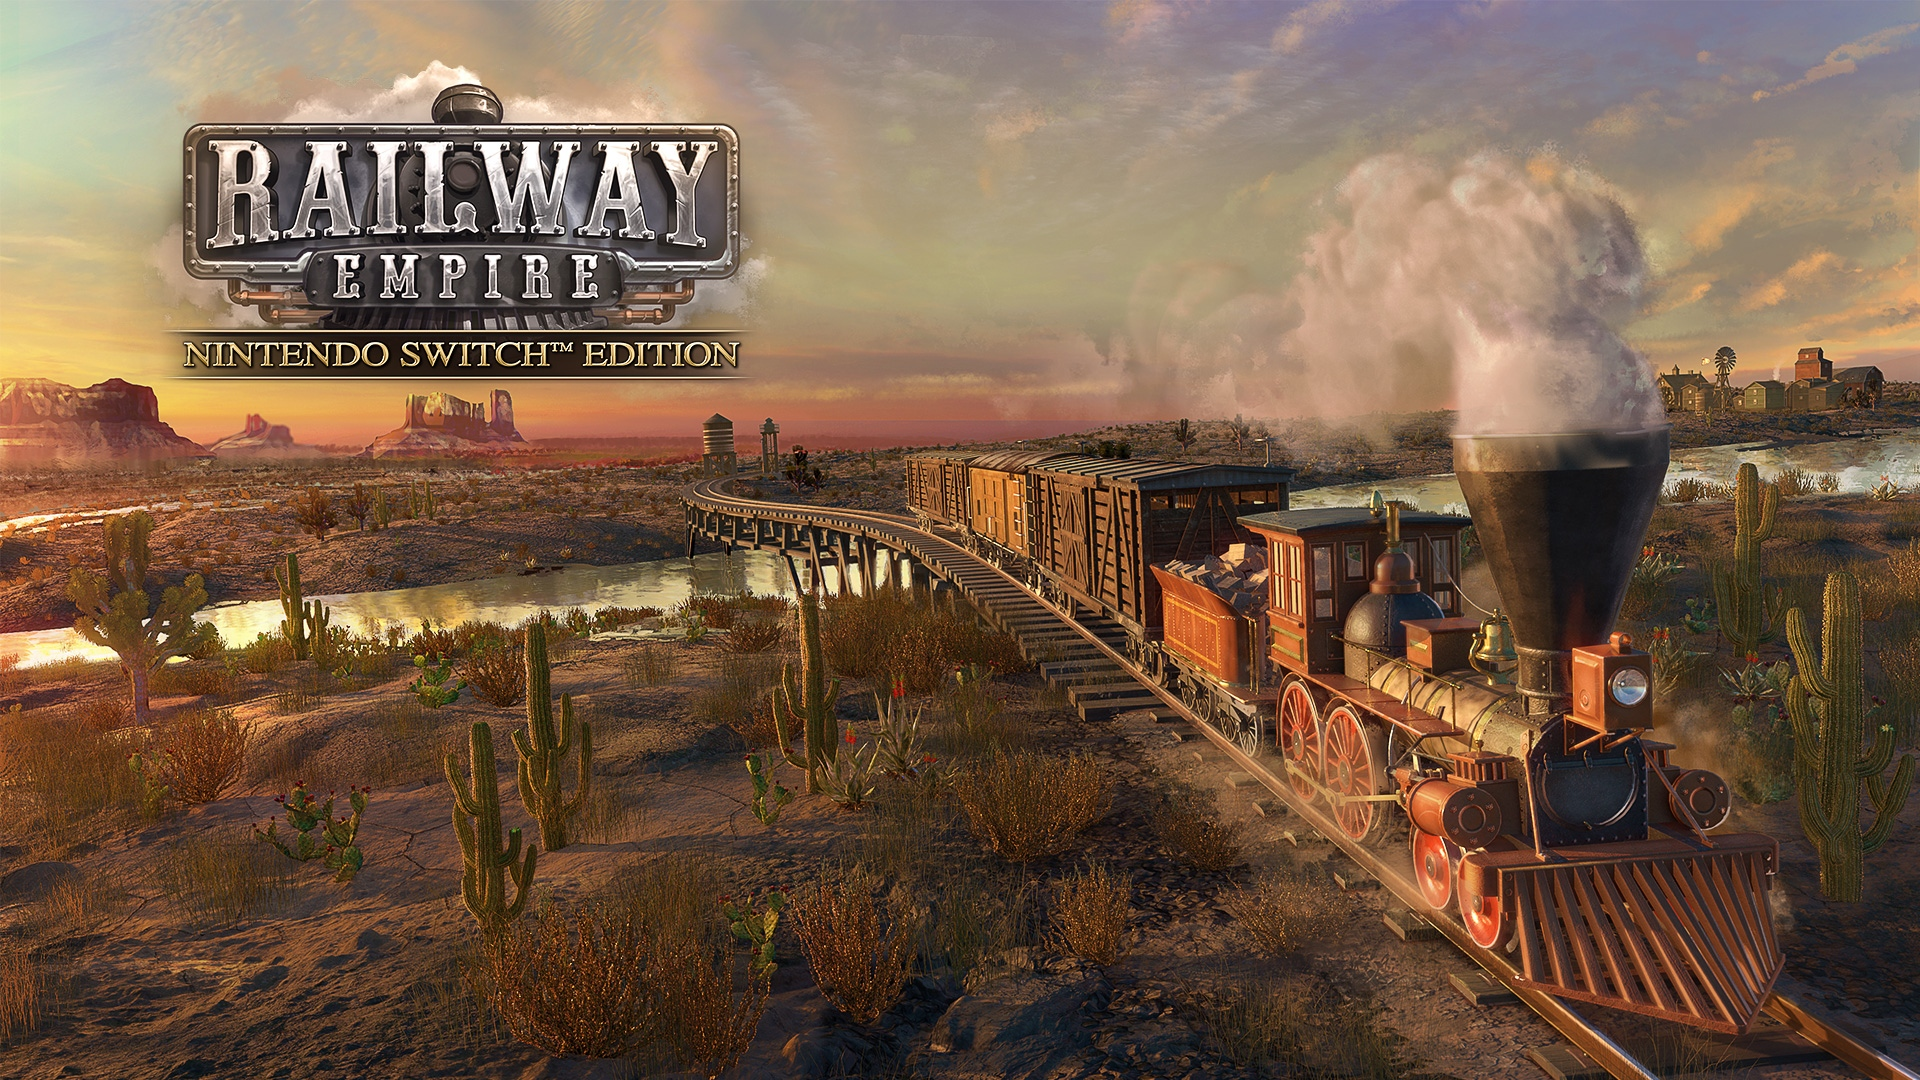 Railway Empire — Nintendo Switch Edition